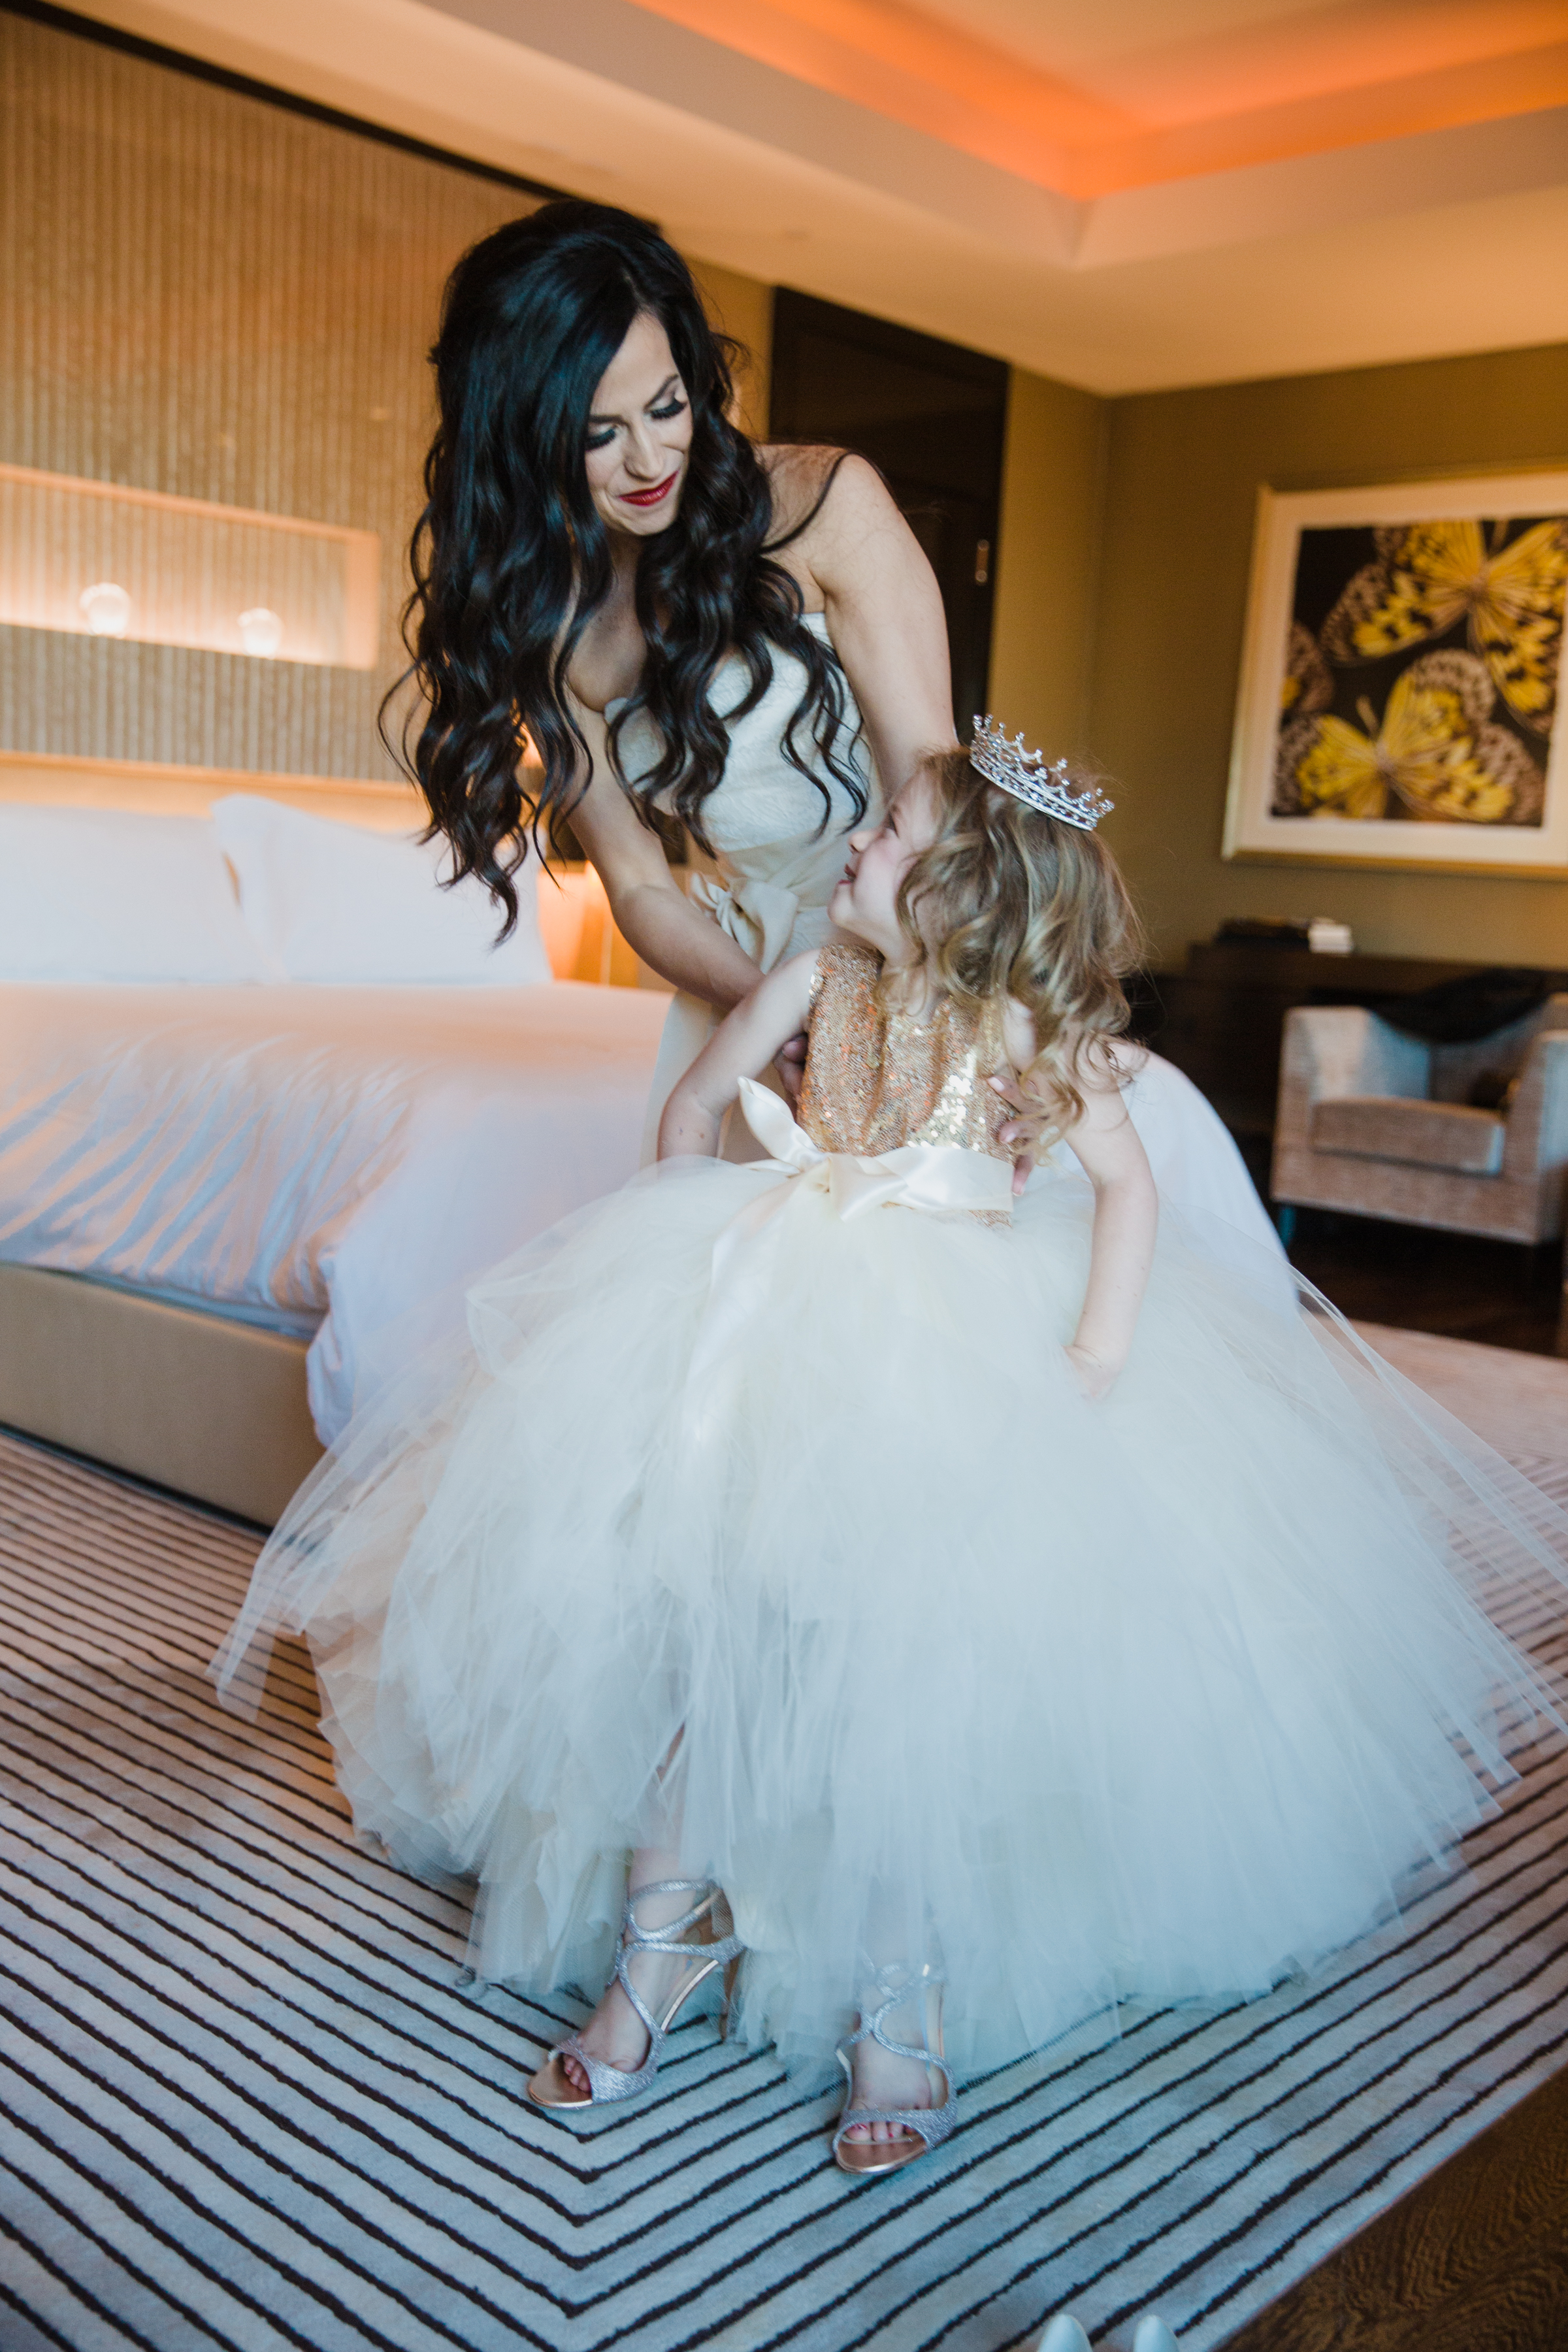 Flower girl wearing bride's wedding shoes.Luxury wedding at the Mandarin Oriental with a color scheme of white, blush, and pops of wine red produced by Las Vegas Wedding Planner Andrea Eppolito with photos by Stephen Salazar Photography.